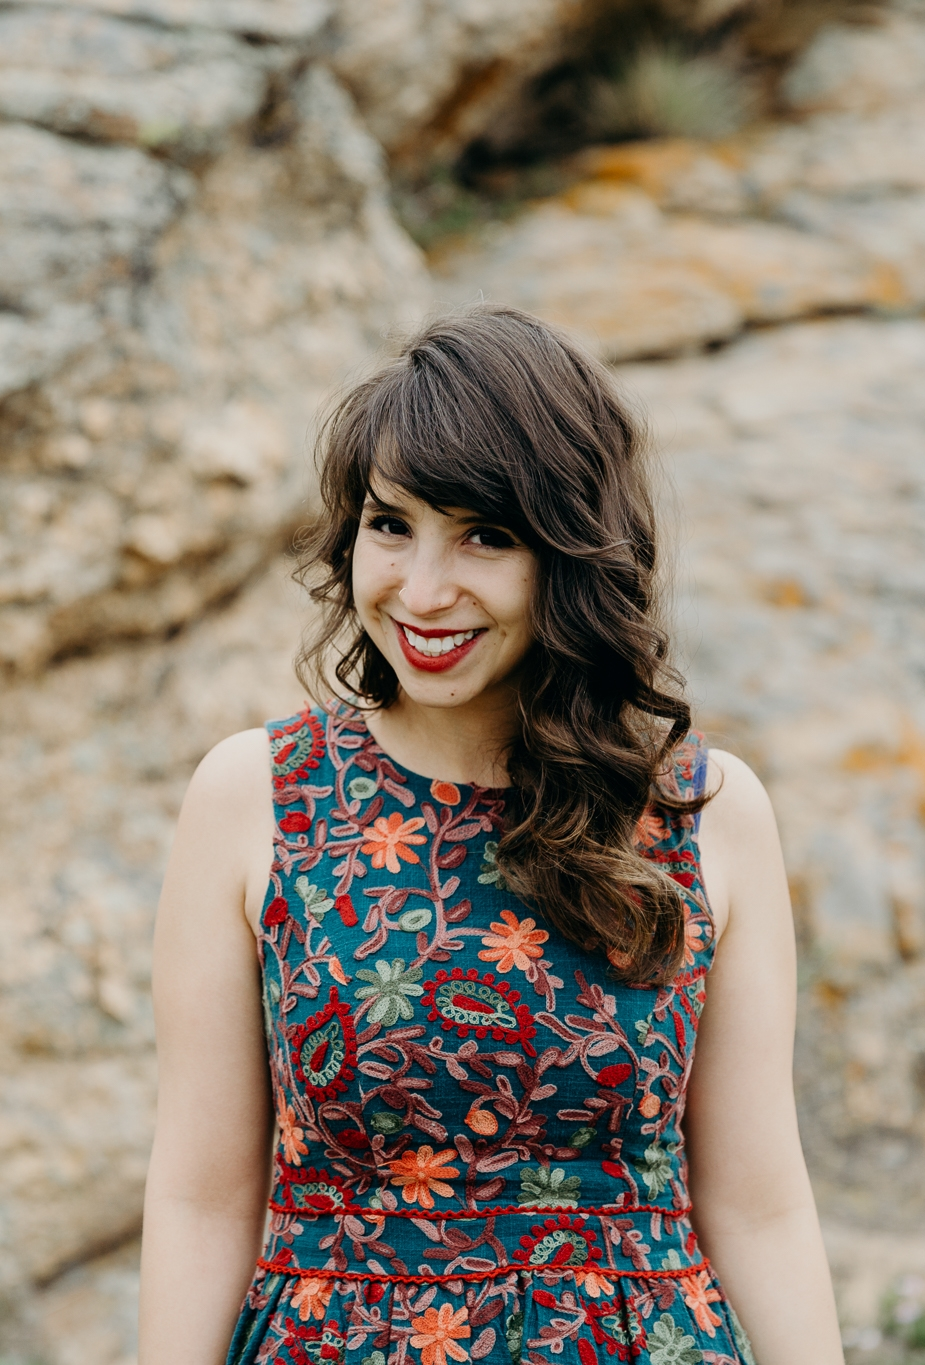 PAOLA. ( Pronounced Pah-oh-lah)    I am a lover of anime, tea and succulents! I am originally from Guadalajara, Mexico, but I grew up in Boulder, Colorado! My parents made sure I never forgot my Spanish, so I am fluent in Spanish and English. Even though I love photography, I have a degree in nutrition and enjoy learning how food can affect our body in a positive or negative way.